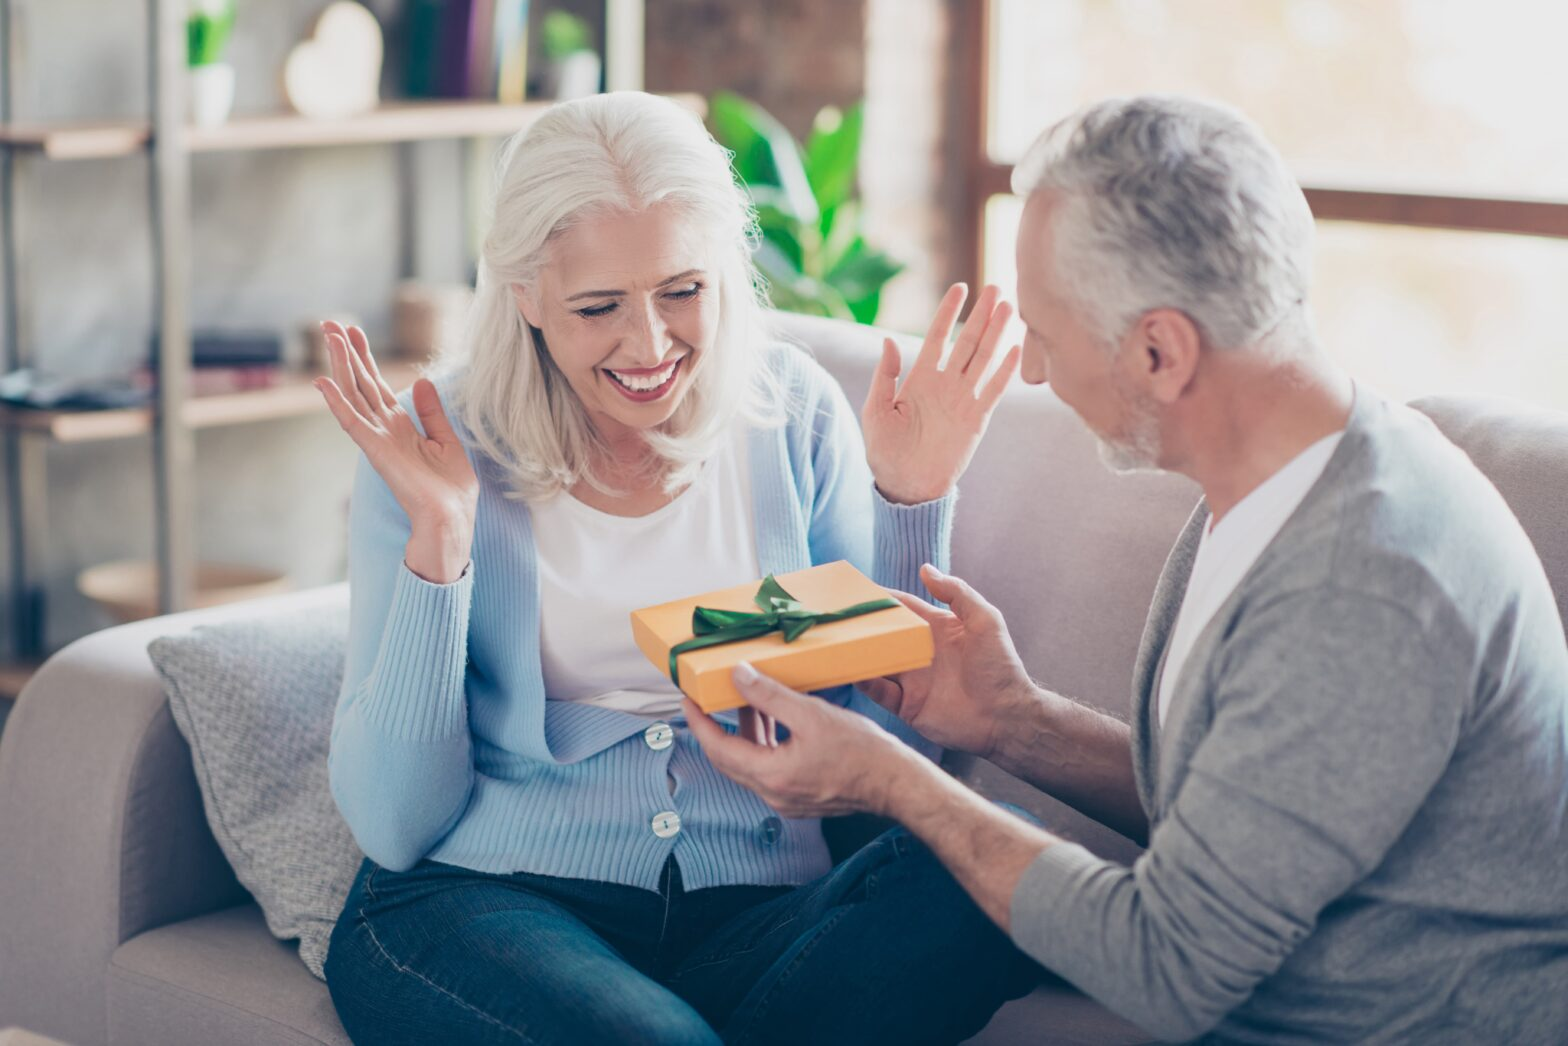 Man giving gift to woman